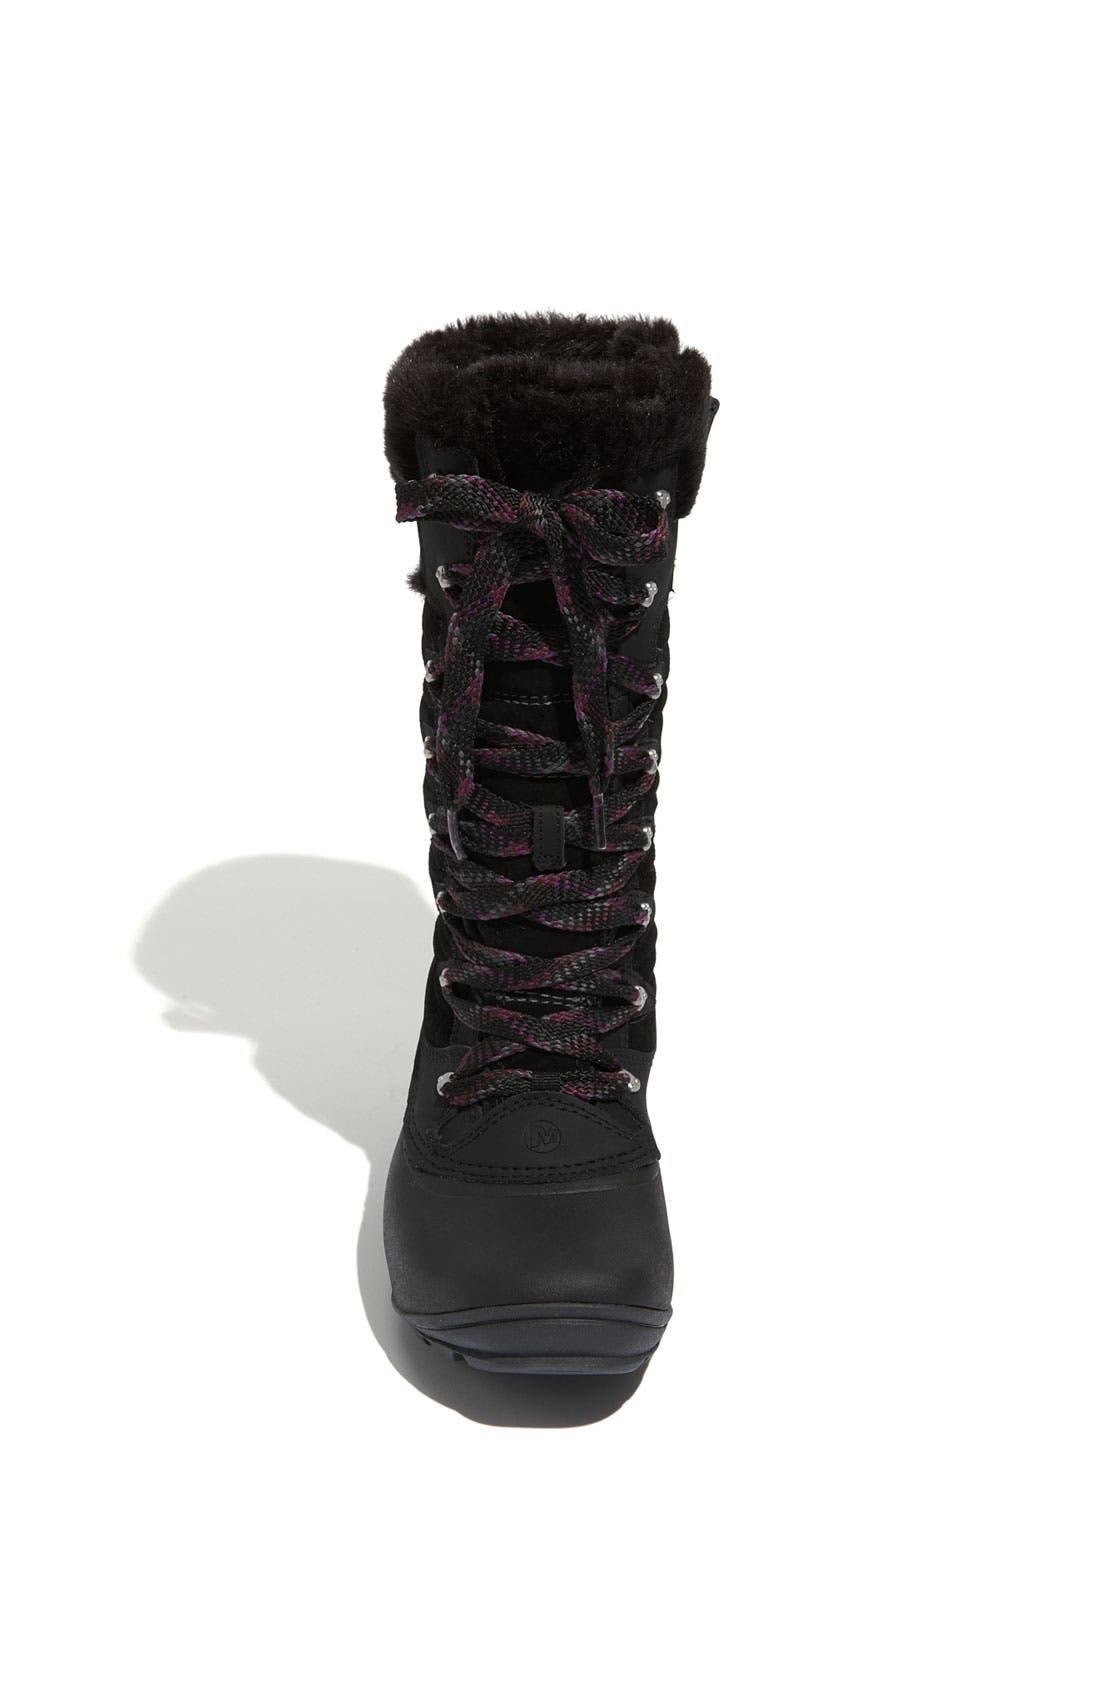 'Winterbelle Peak' Waterproof Boot,                             Alternate thumbnail 3, color,                             001